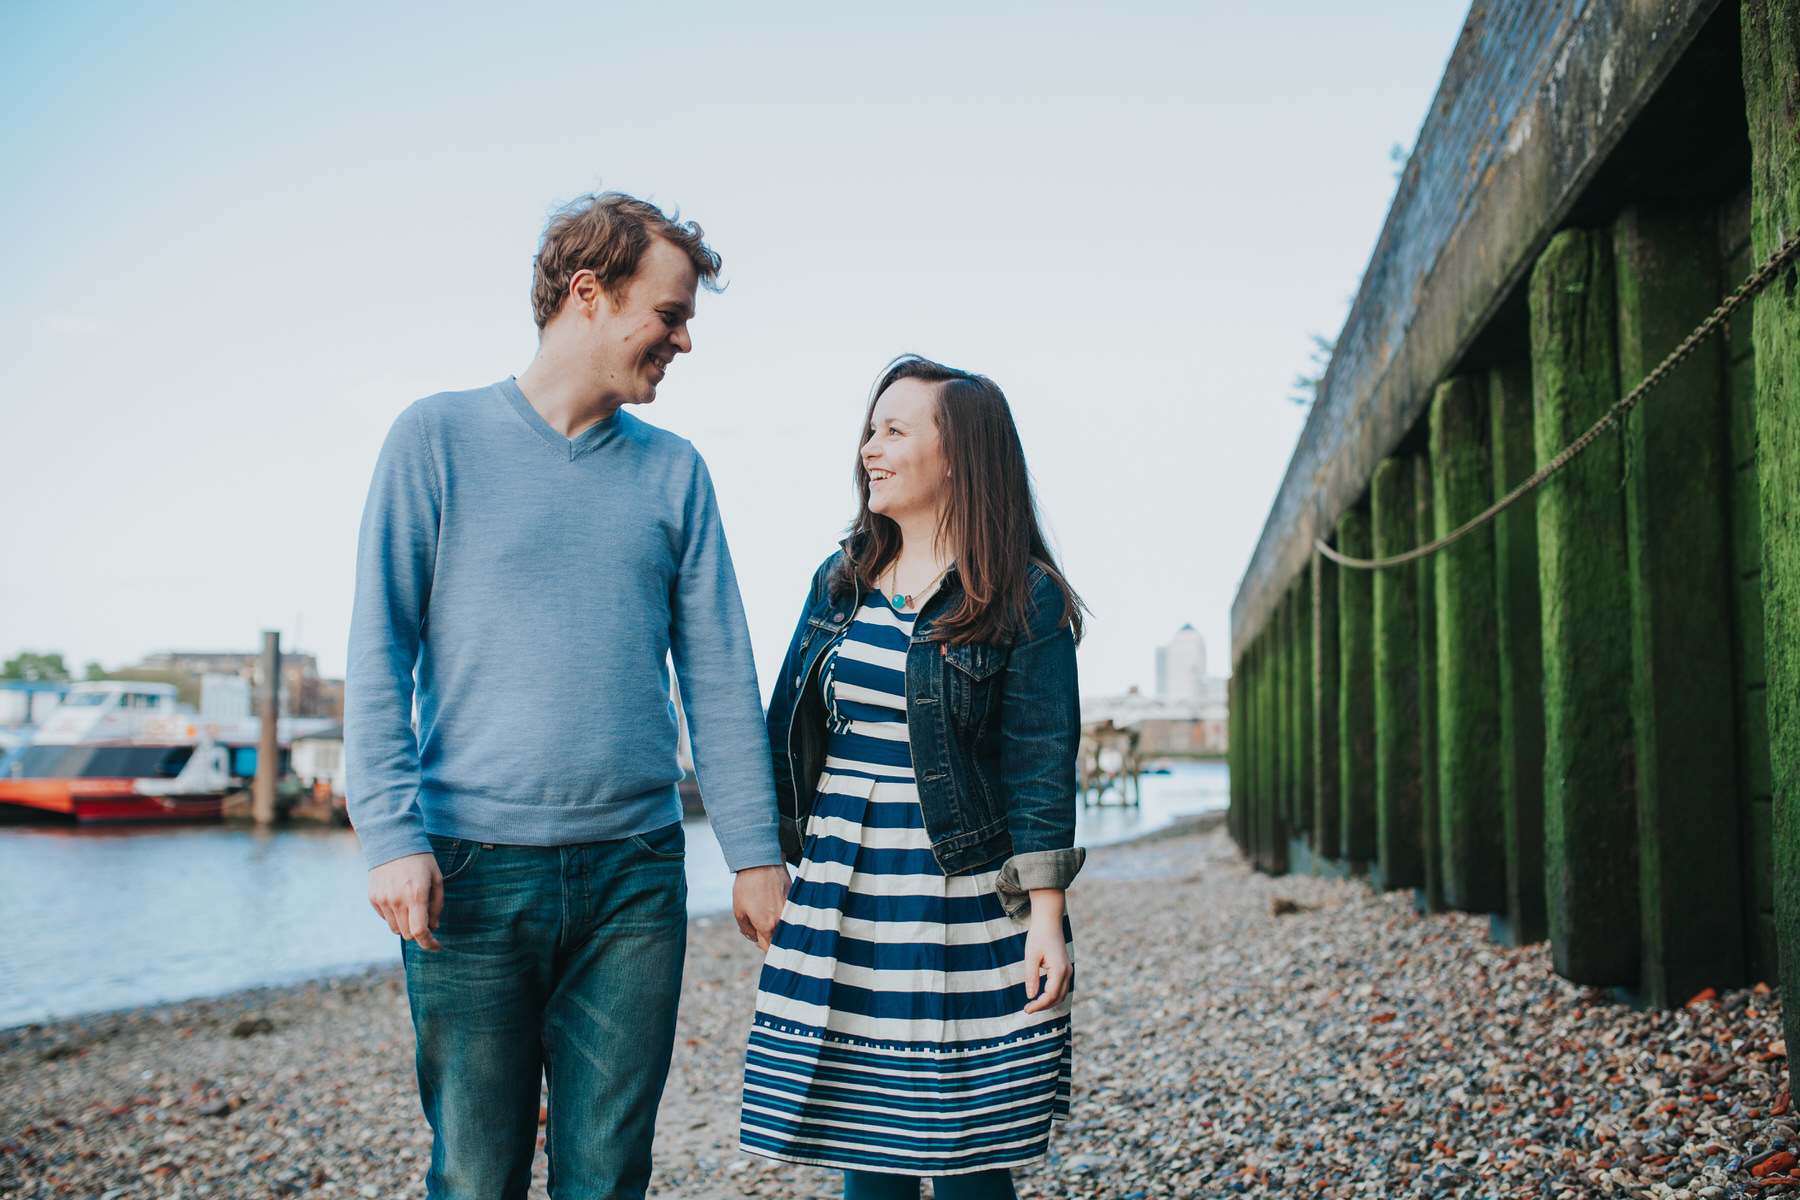 3-Quirky-engagement-London-sweet-couple.jpg